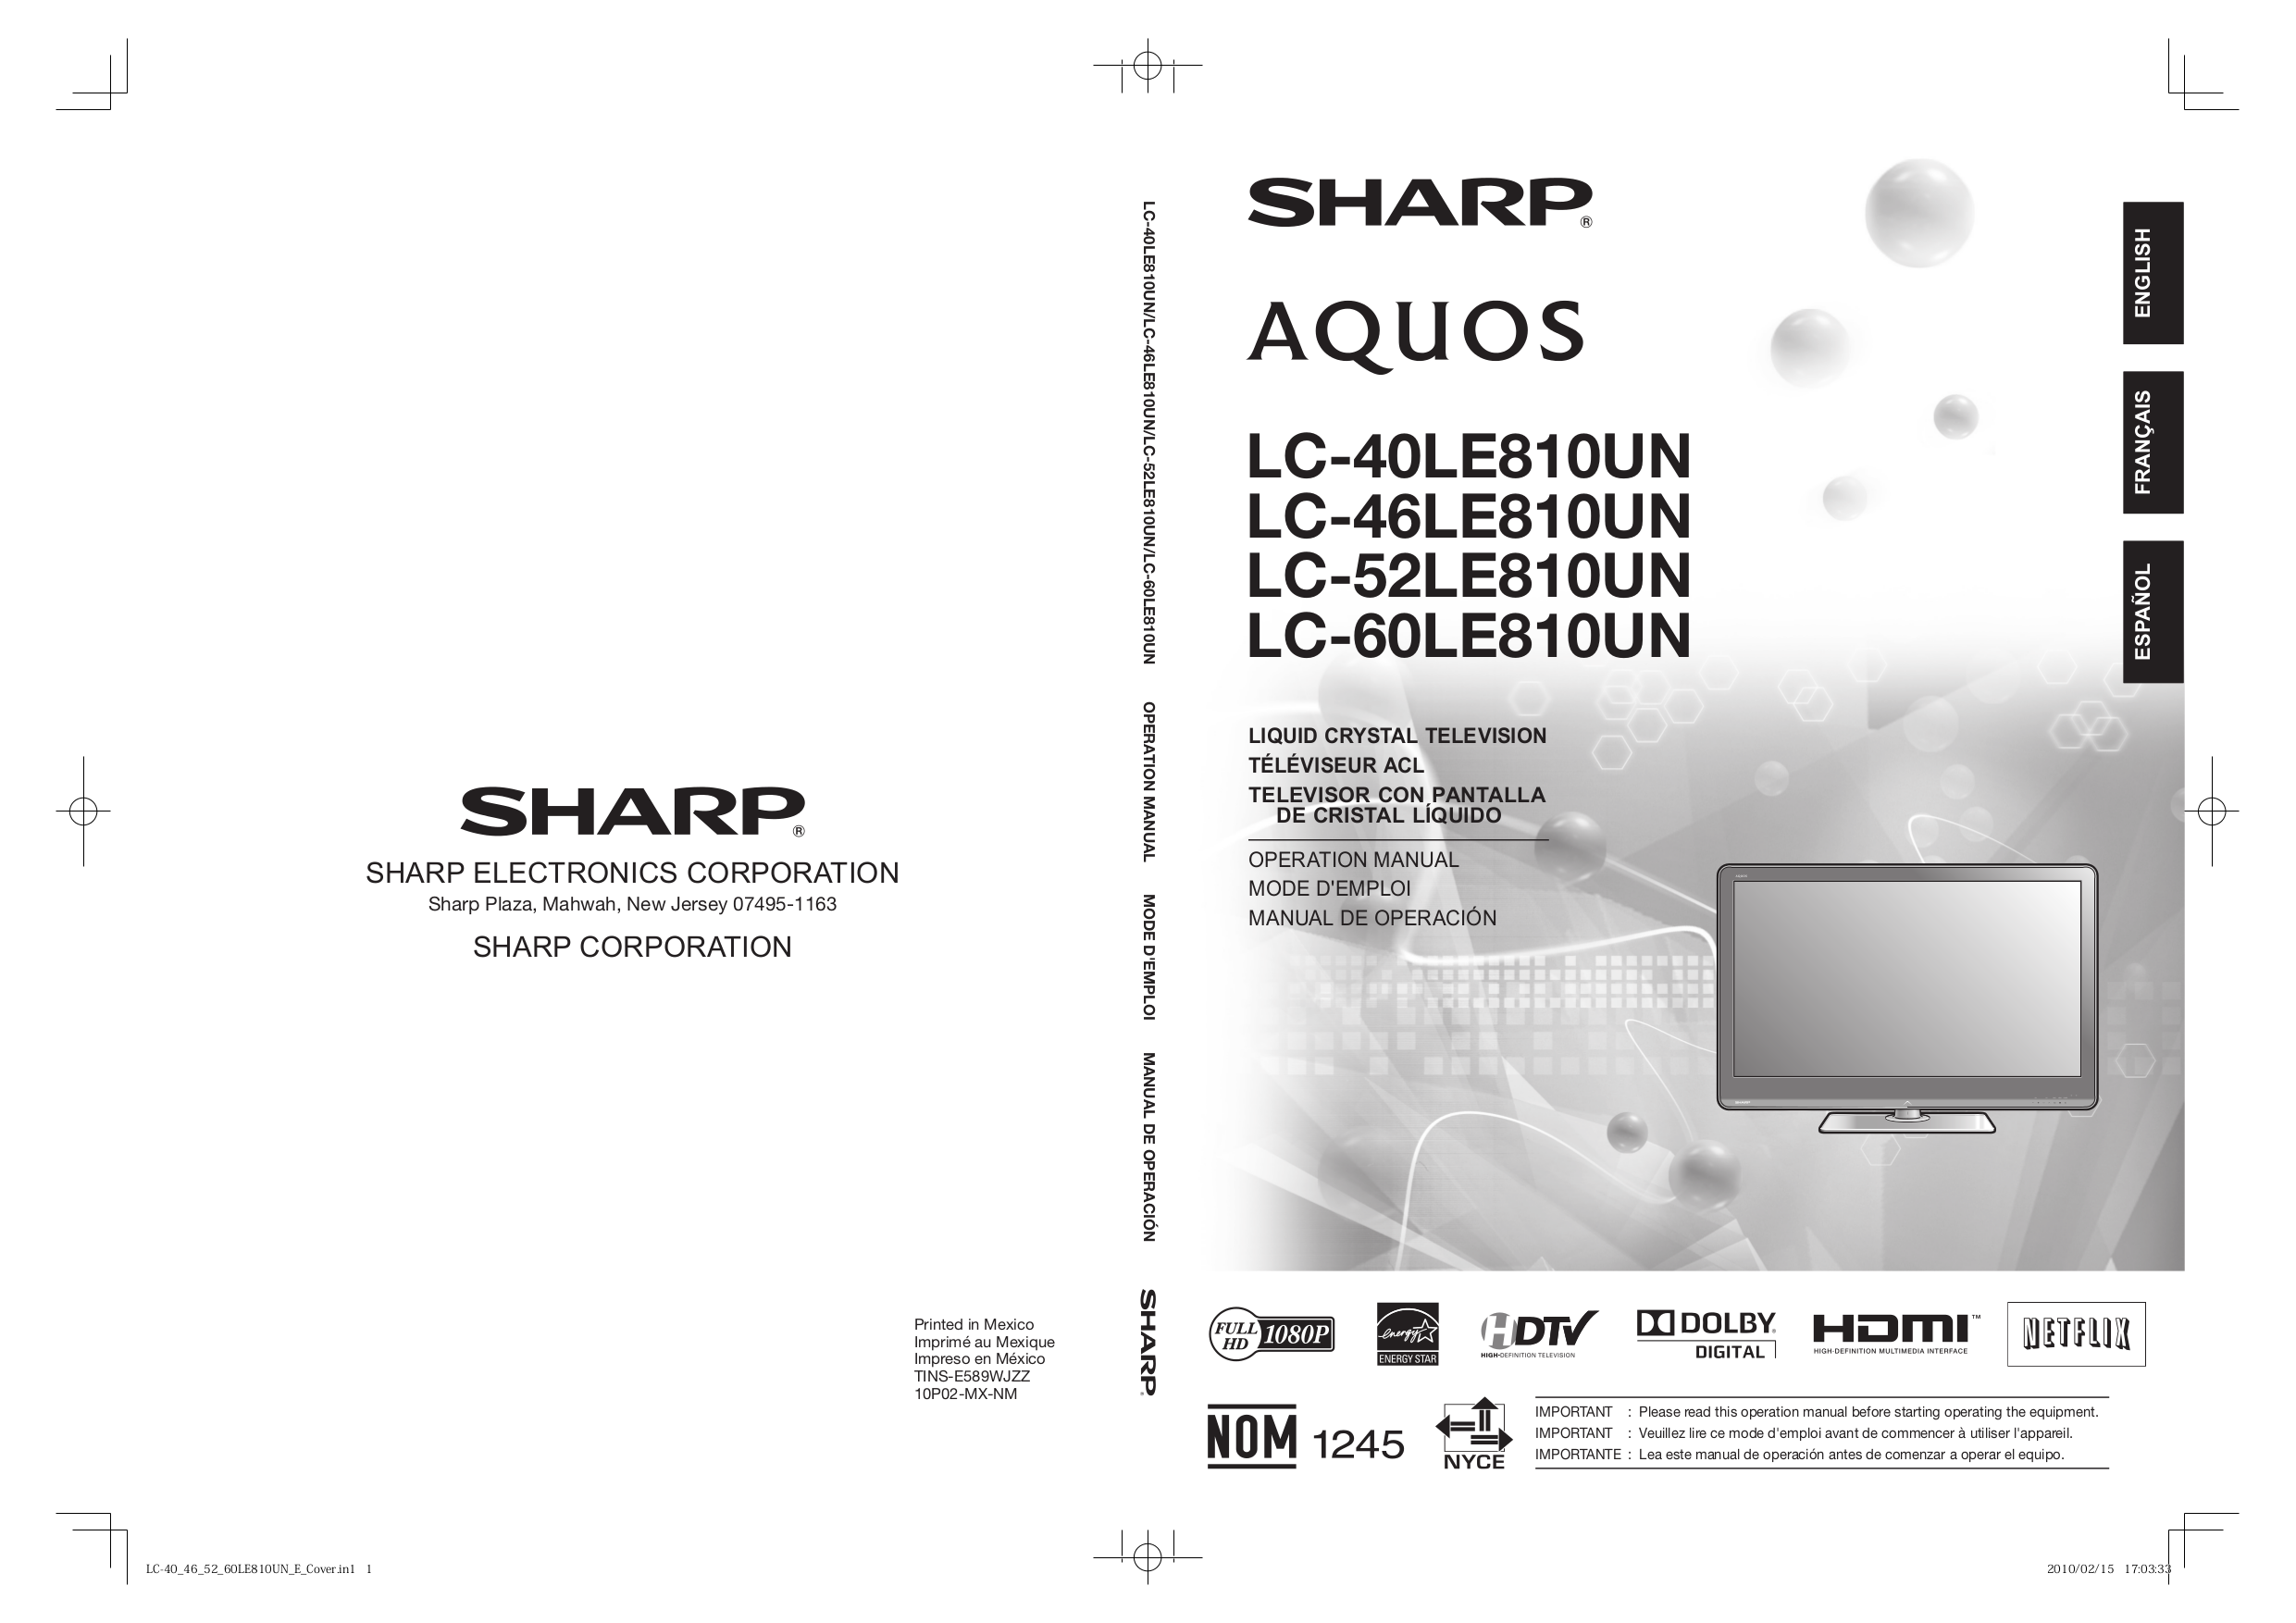 download free pdf for sharp aquos lc 46le810un tv manual rh umlib com Sharp ManualsOnline sharp lc-46le810un manual